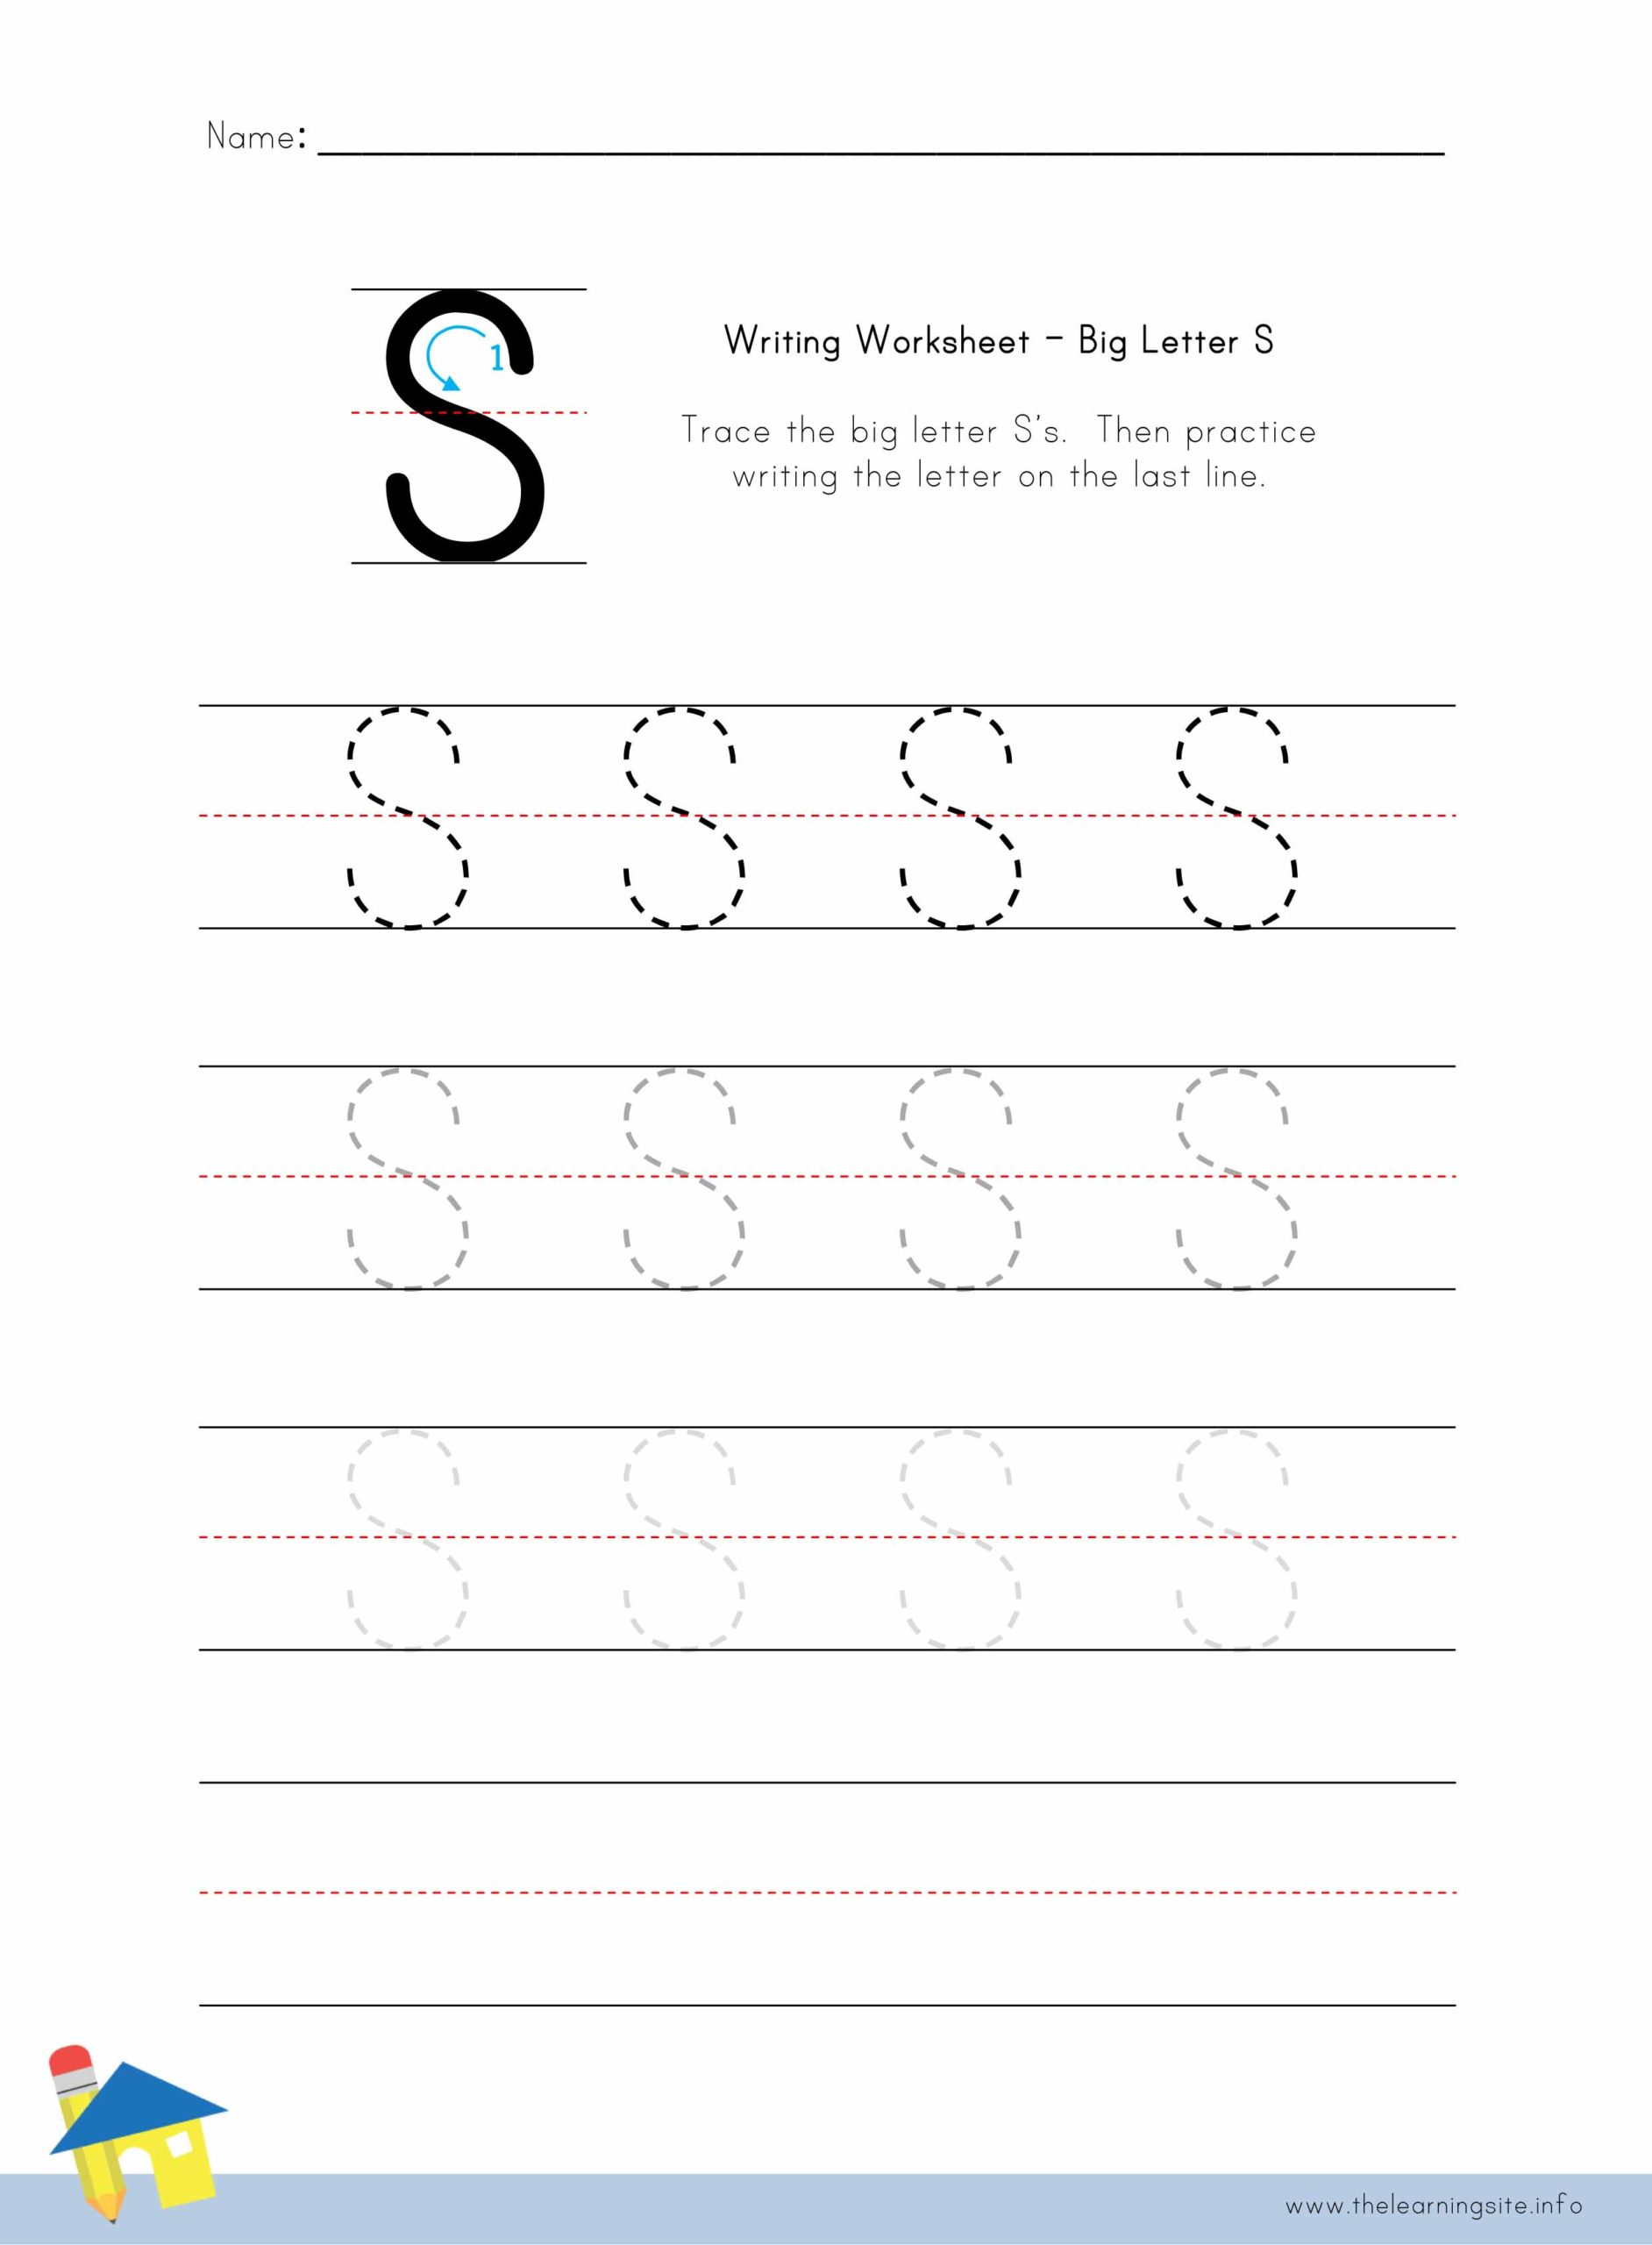 Big Letter S Writing Worksheet The Learning Site